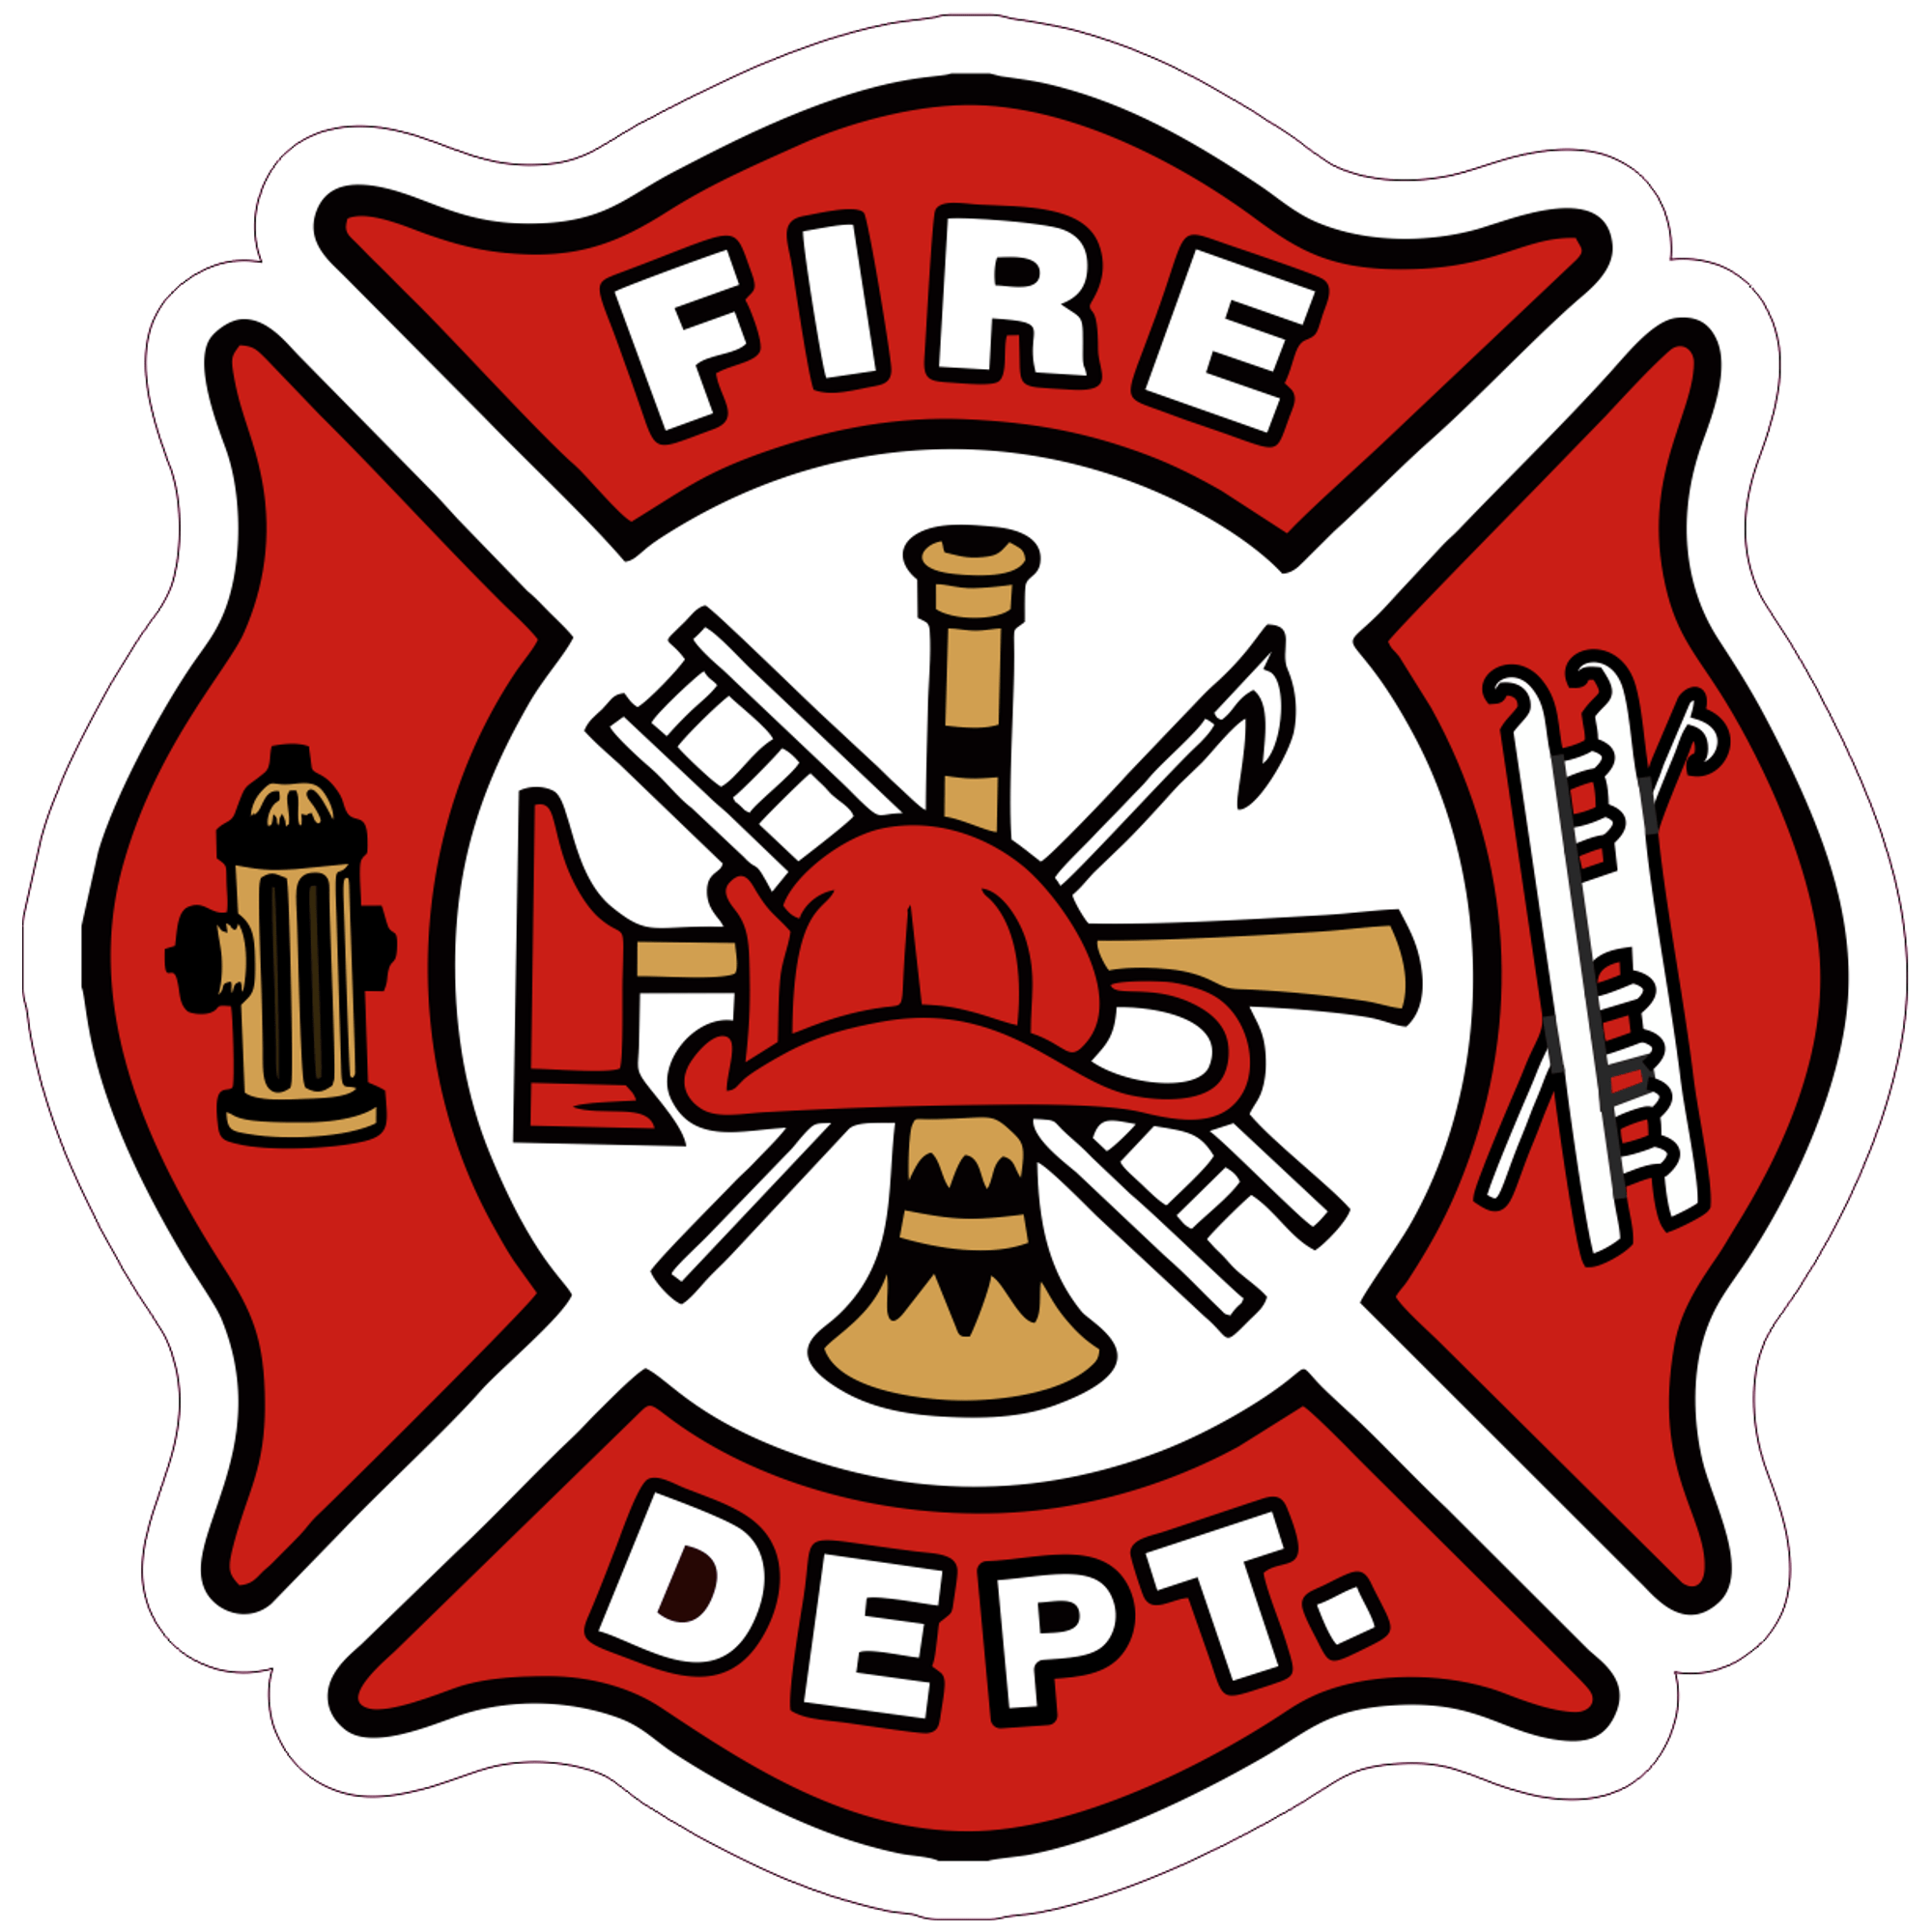 Fire Dept. Maltese Cross - 4 inch Sticker